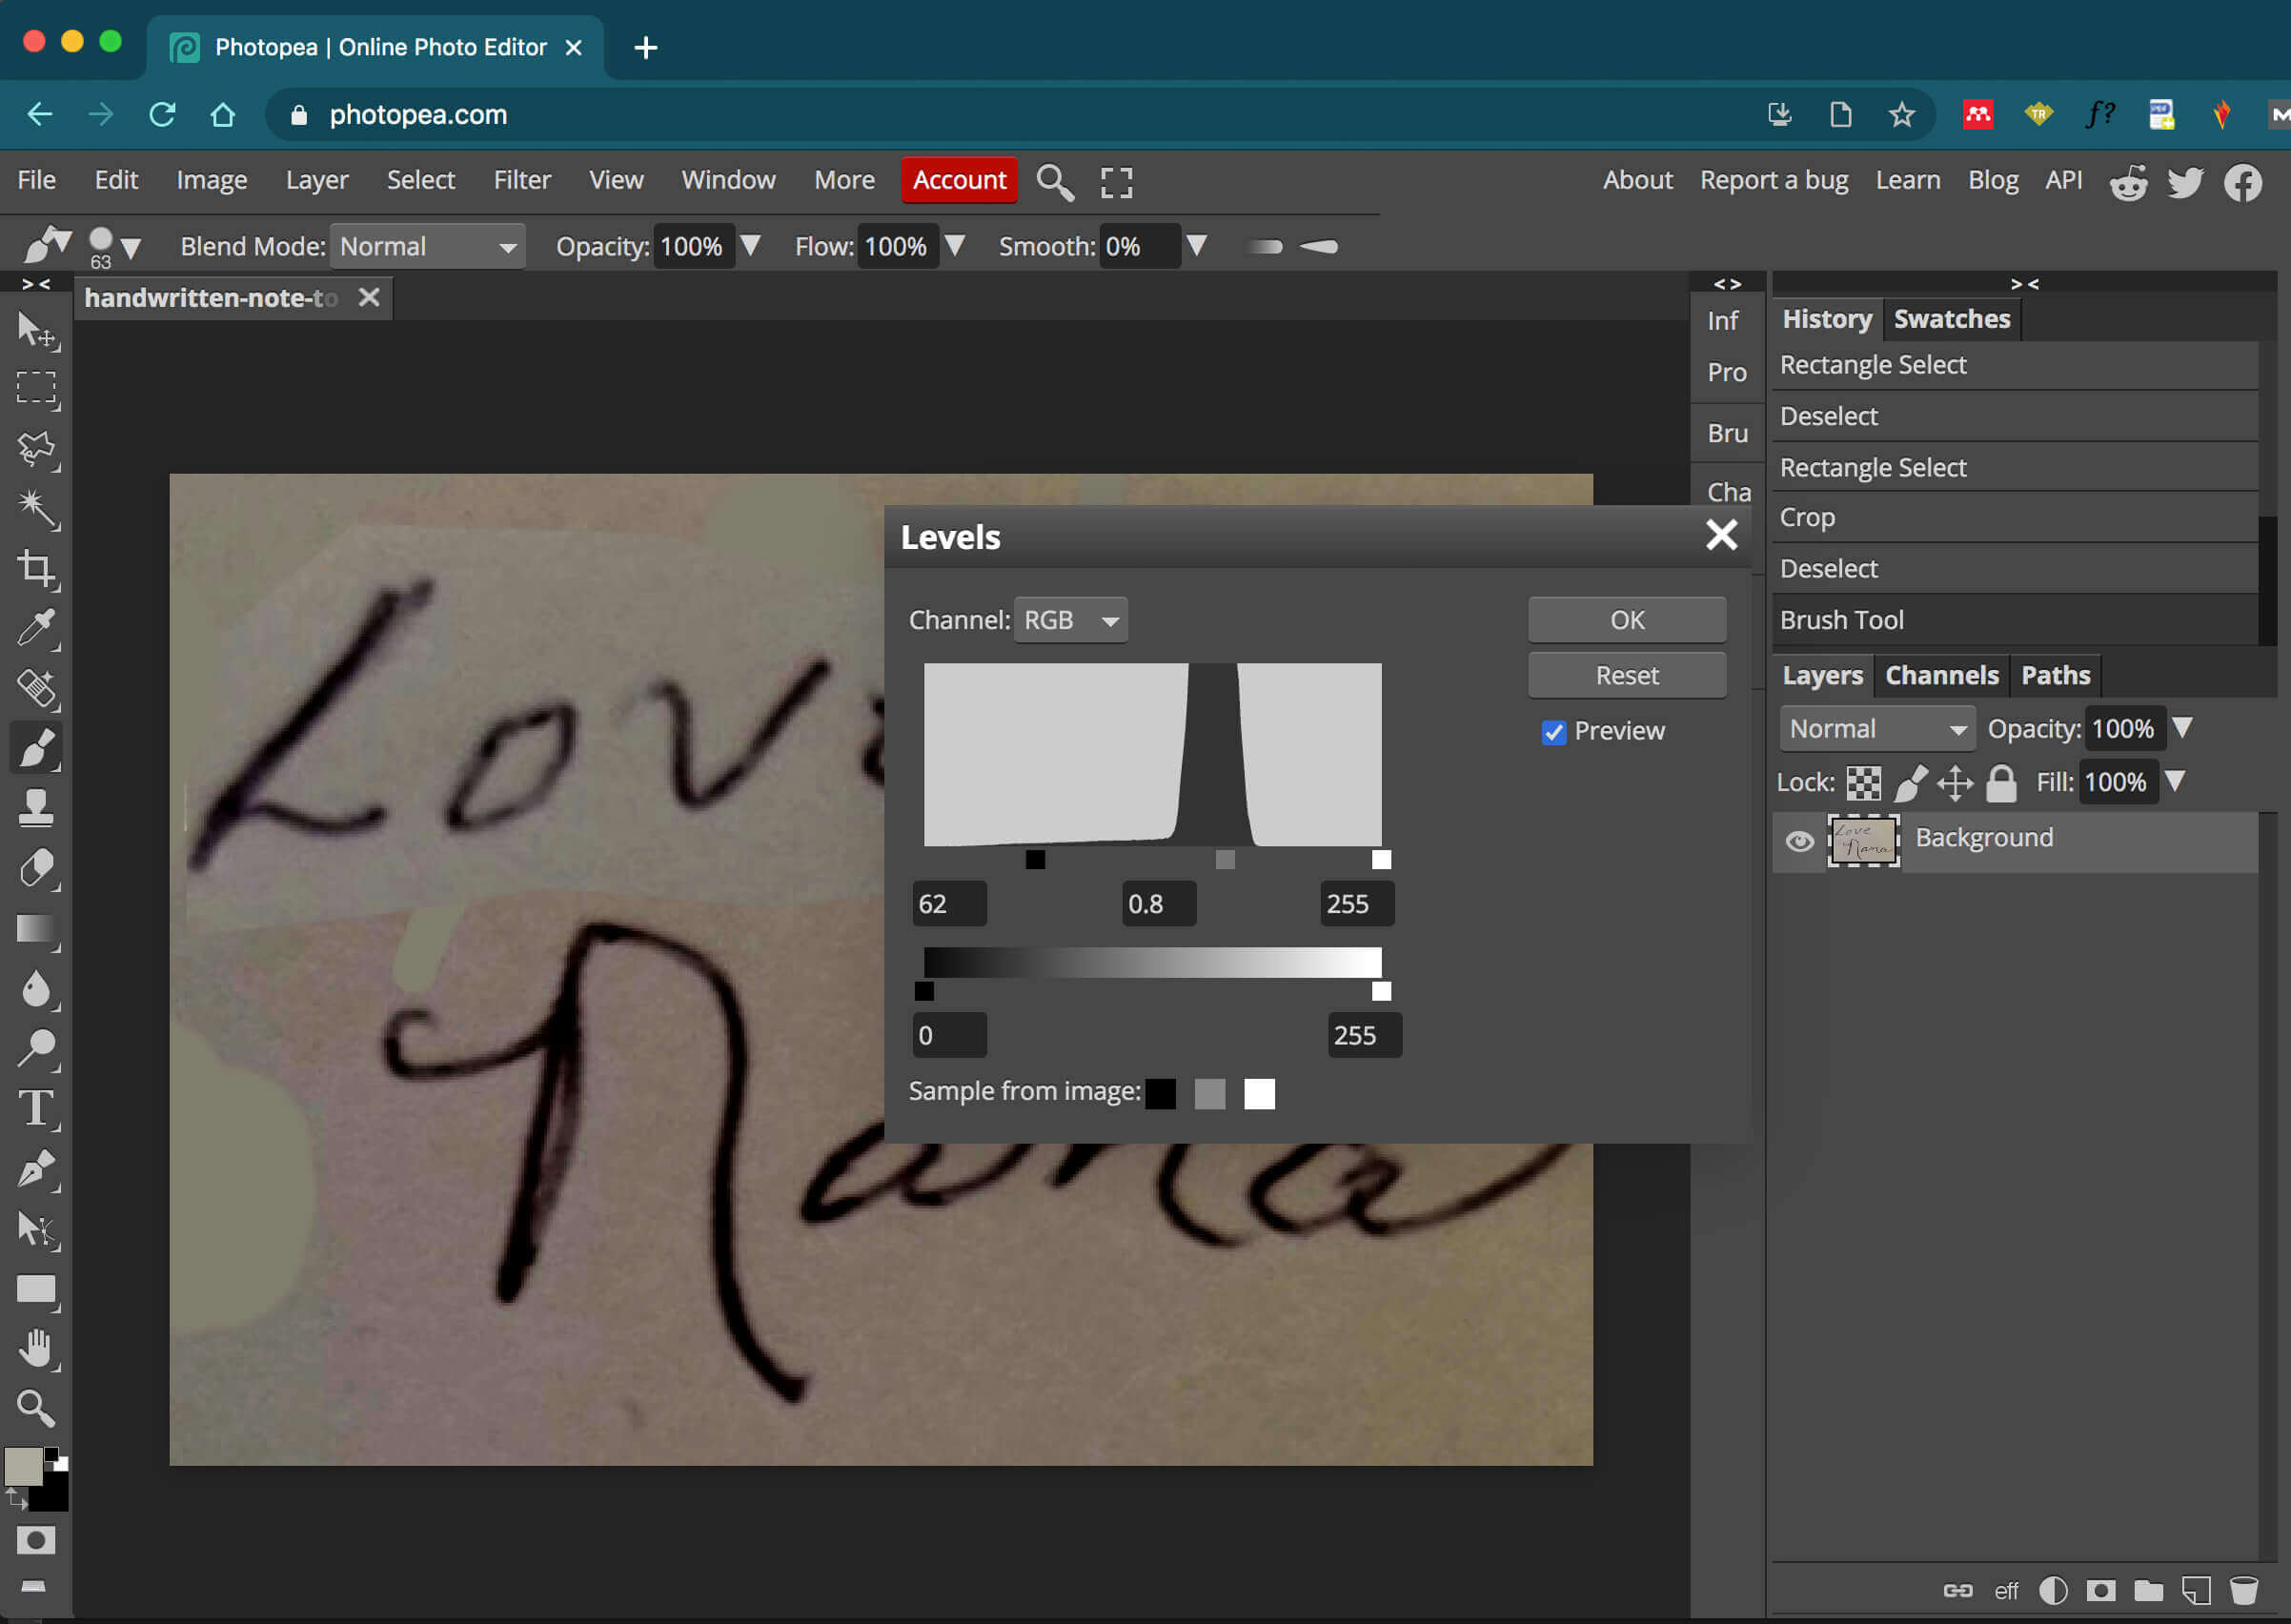 adjusting the levels of the handwriting image in Photopea